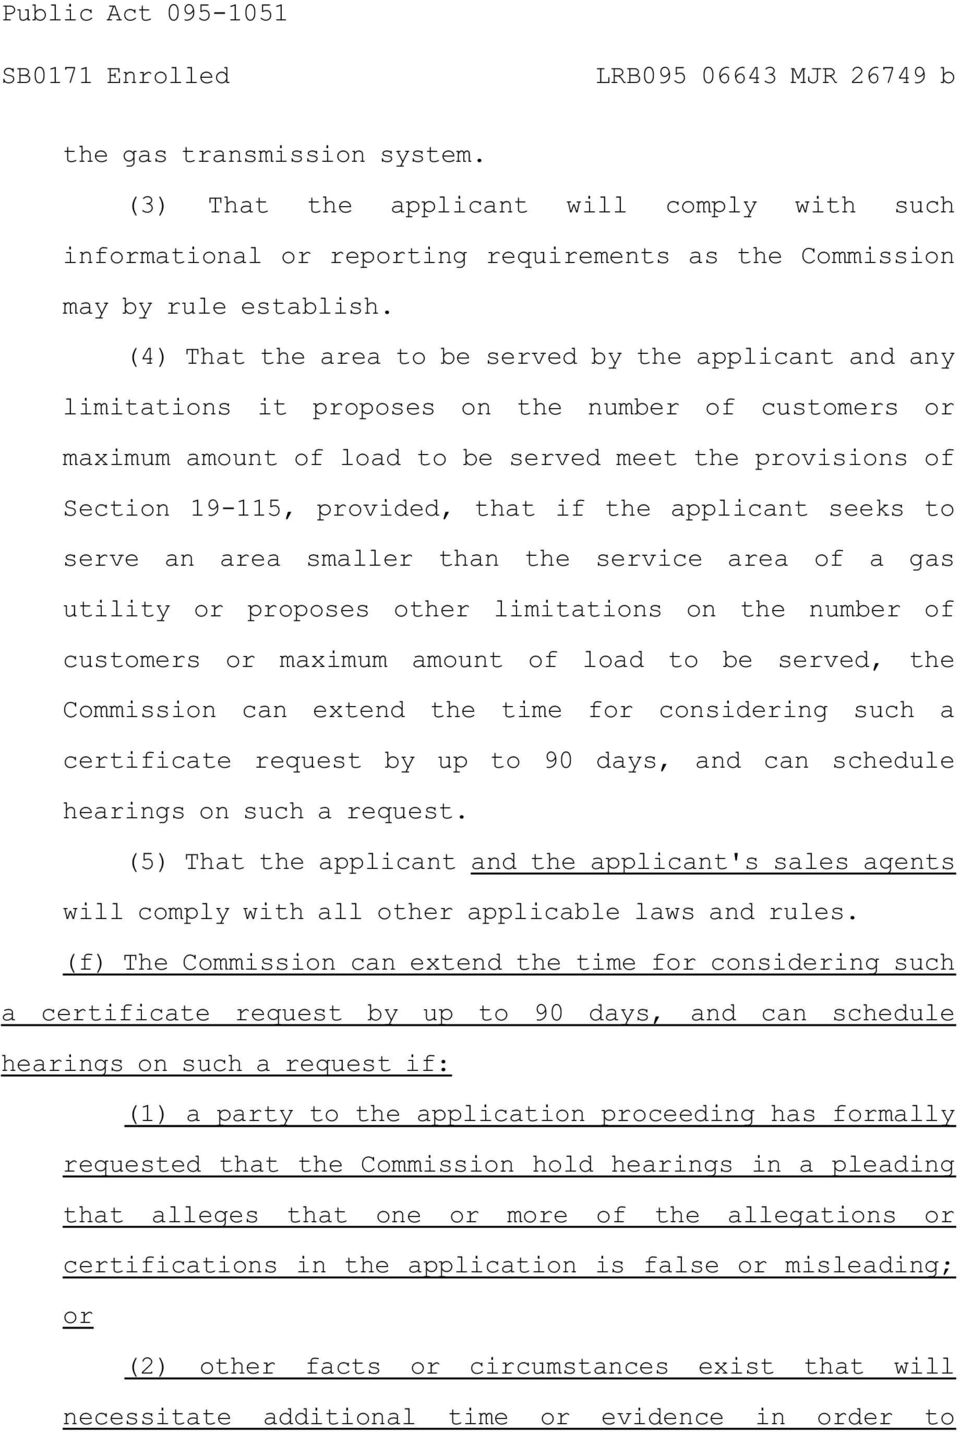 if the applicant seeks to serve an area smaller than the service area of a gas utility or proposes other limitations on the number of customers or maximum amount of load to be served, the Commission